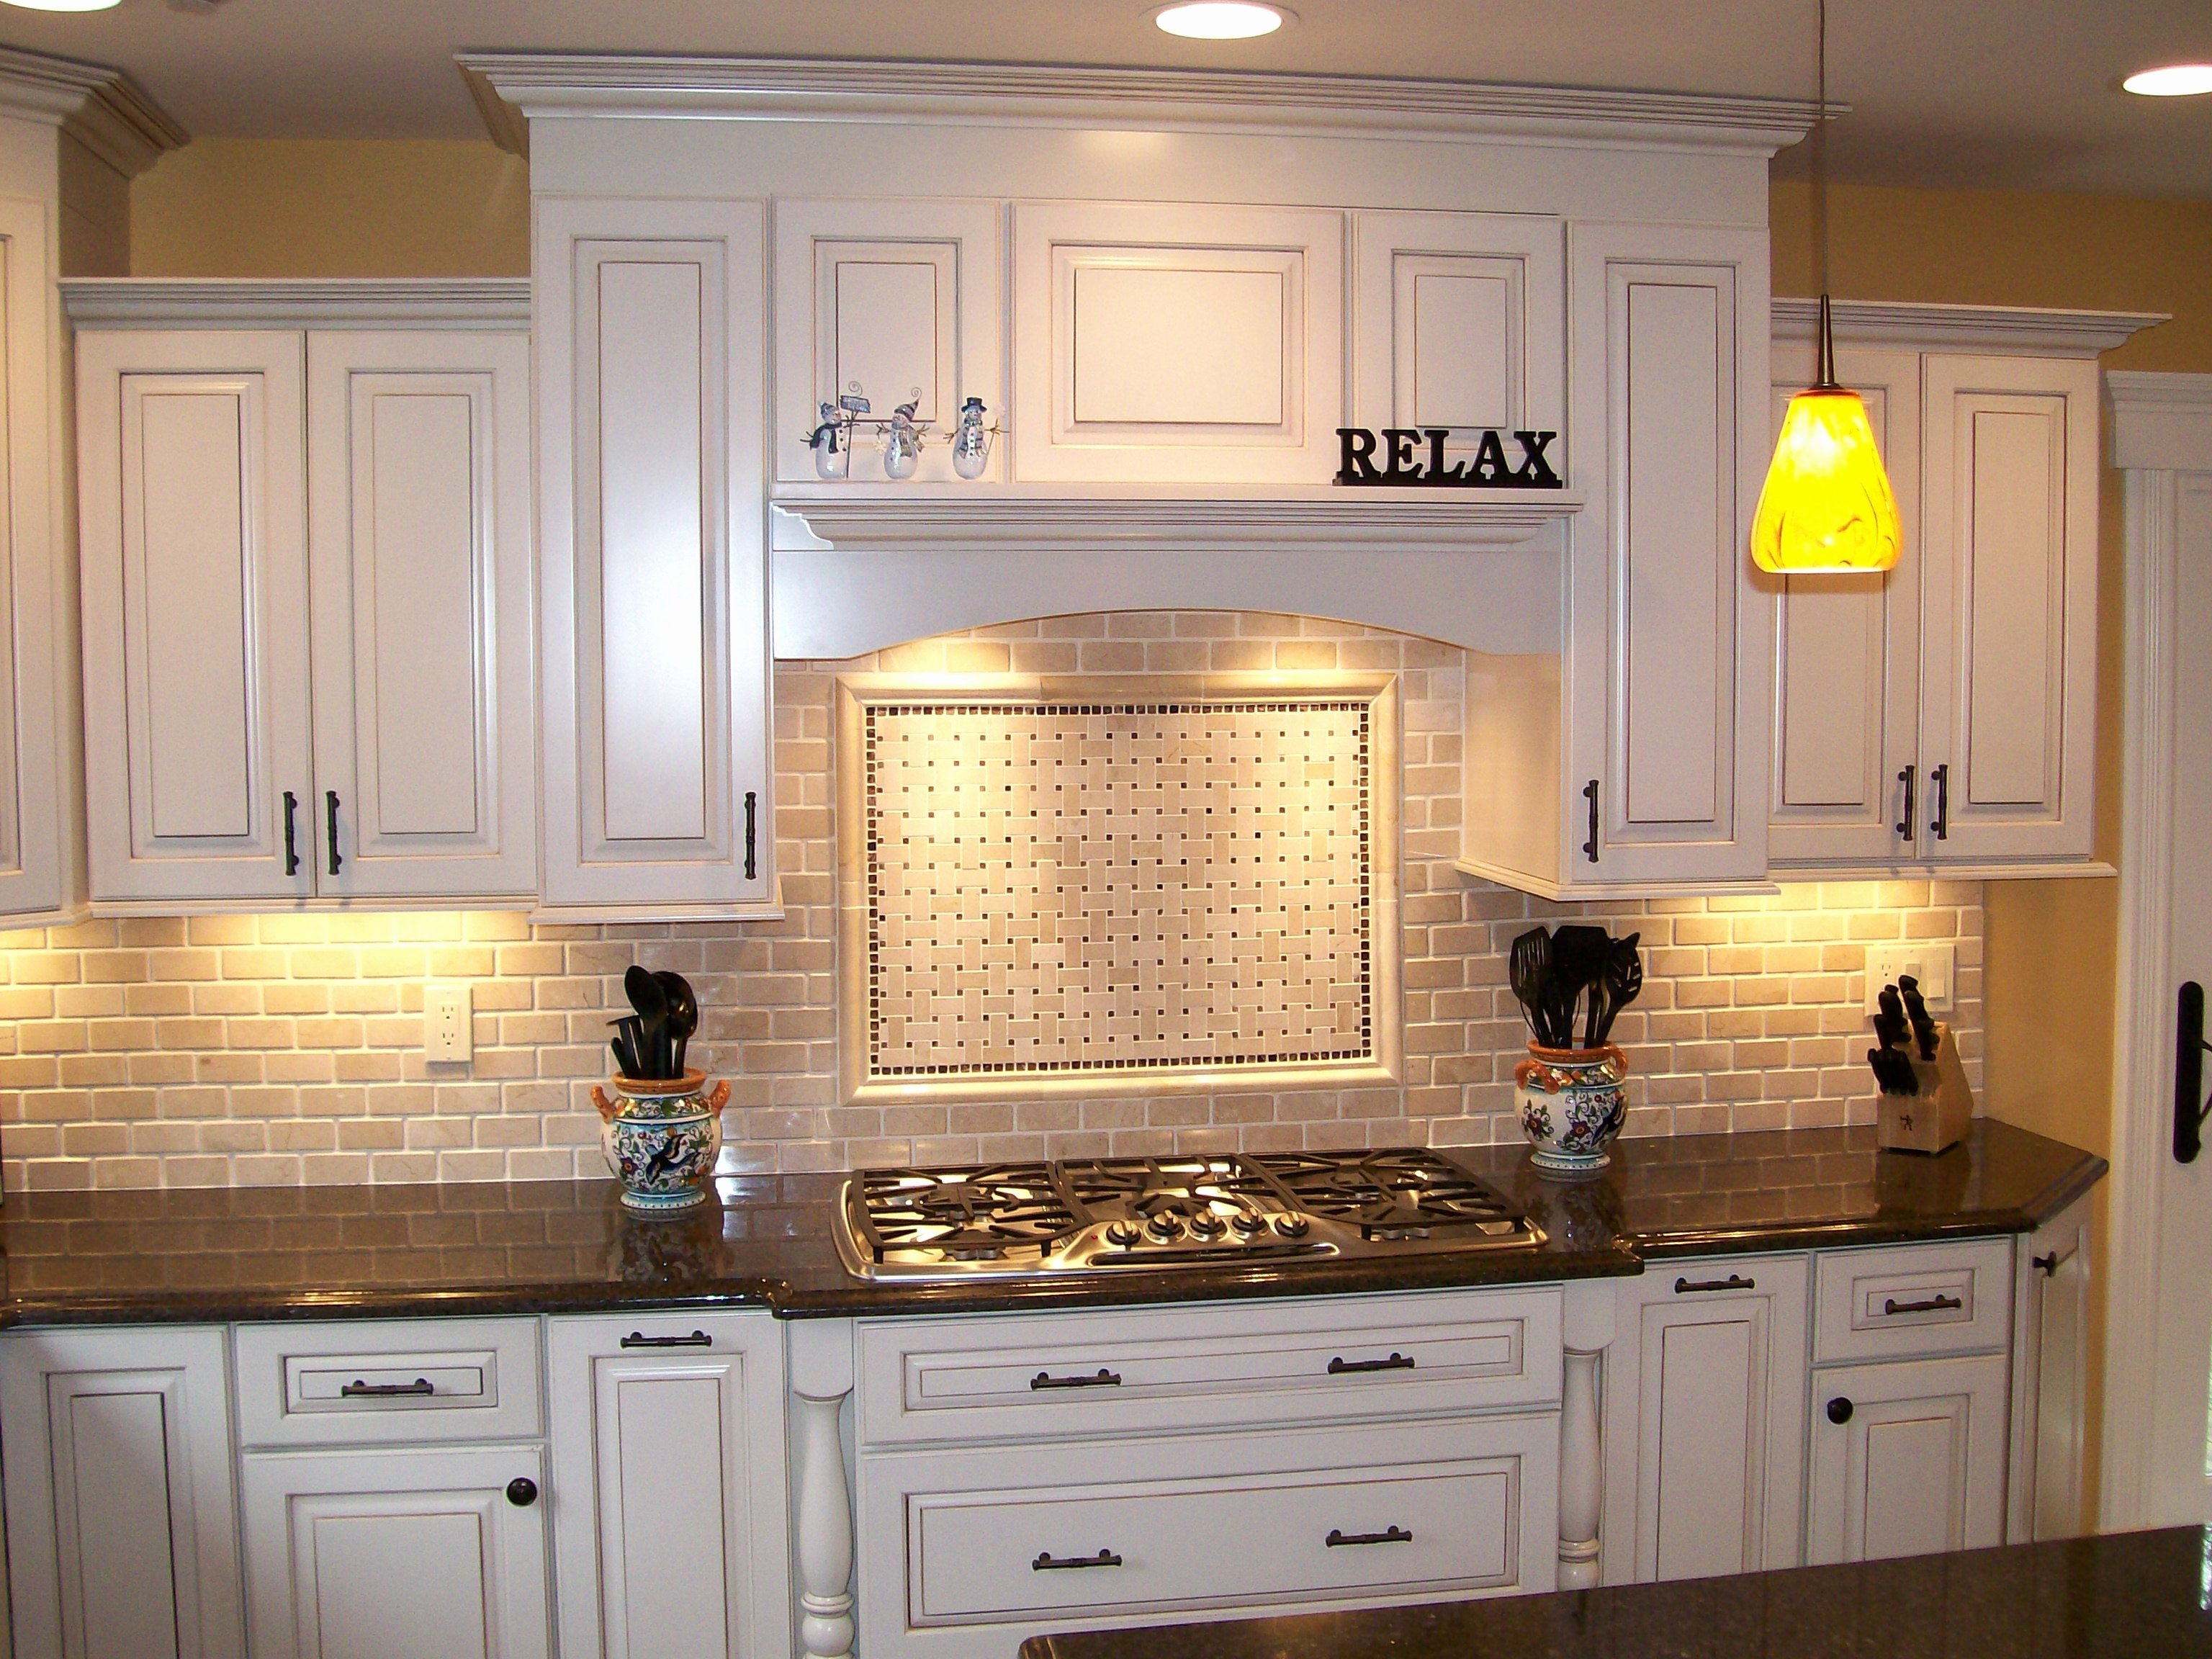 10 Great Backsplash Ideas For Kitchens With Granite Countertops kitchen backsplash ideas dark granite countertops unique kitchen 2020